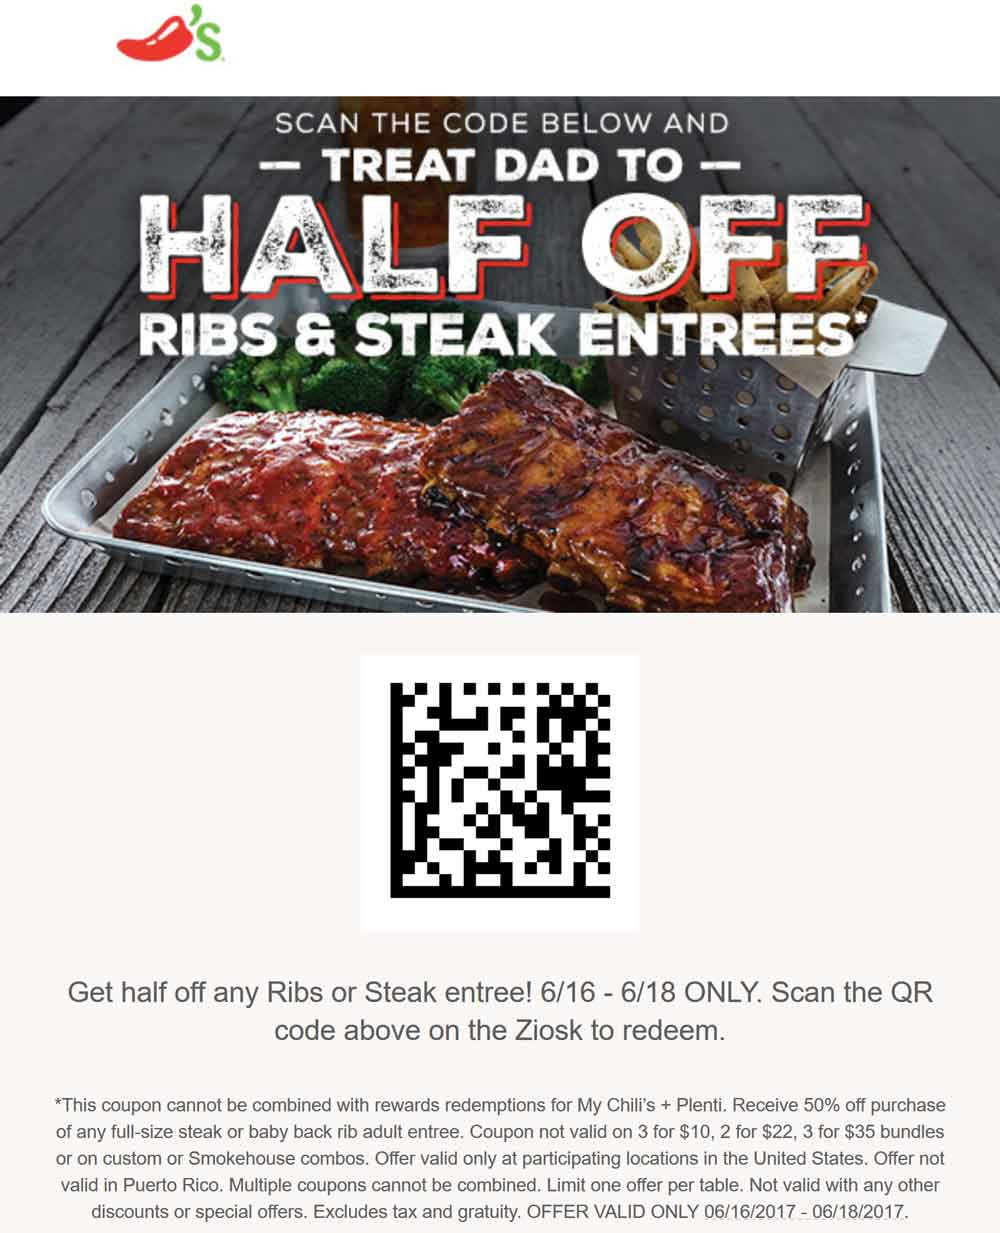 Chilis Coupon March 2019 50% off ribs & steaks at Chilis restaurants